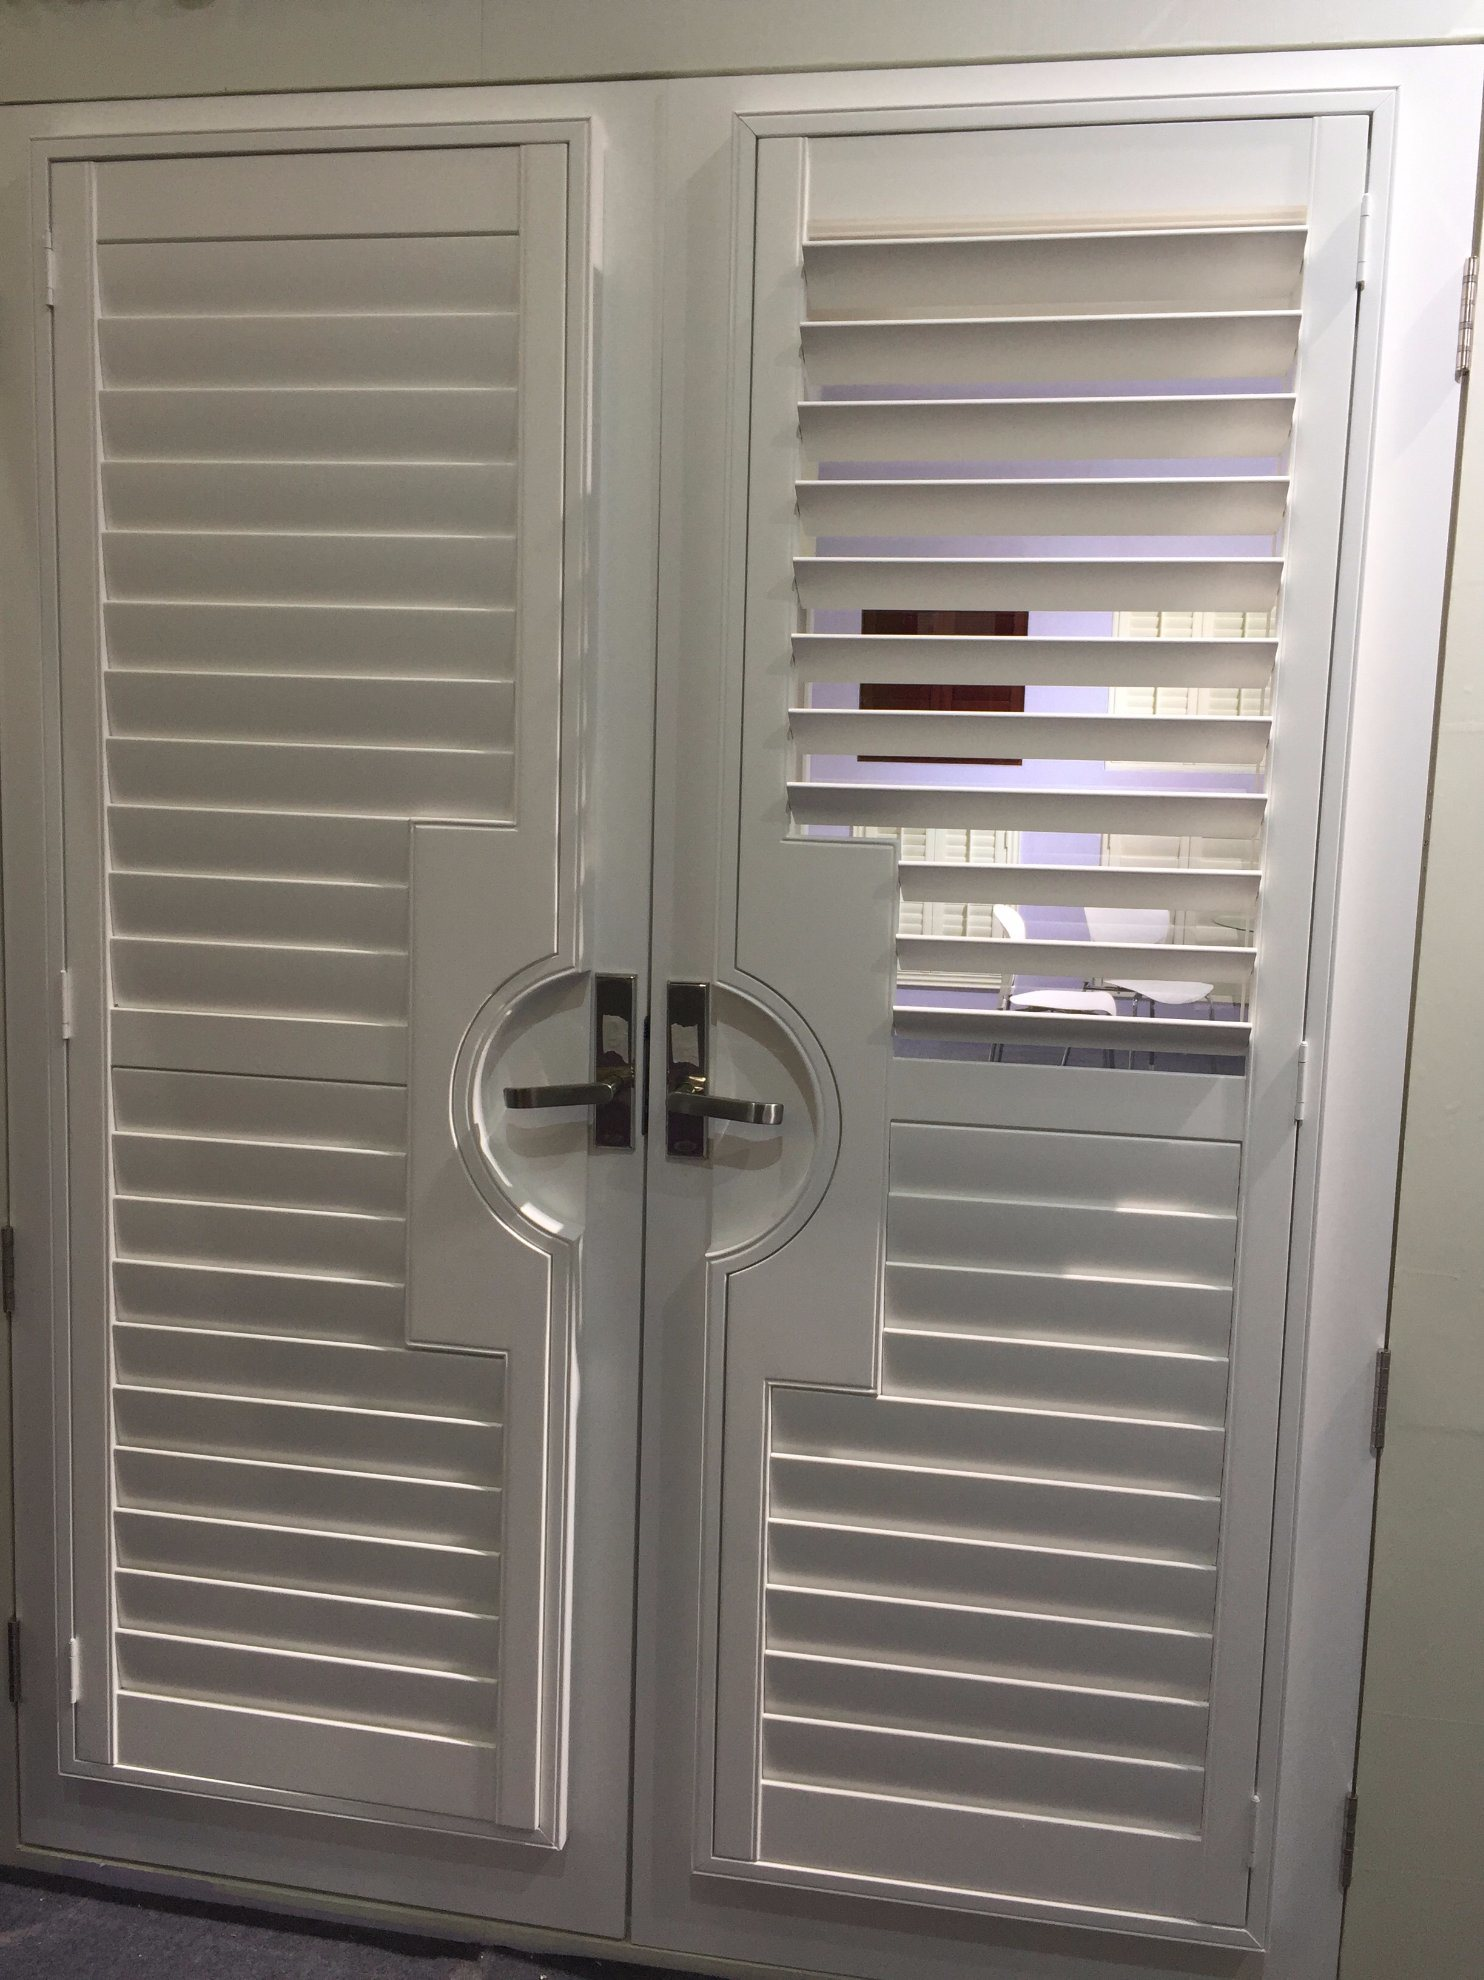 China Plastic French Door Design Adjustable Blinds Plantation Shutters China Basswood Shutters Window Shutters